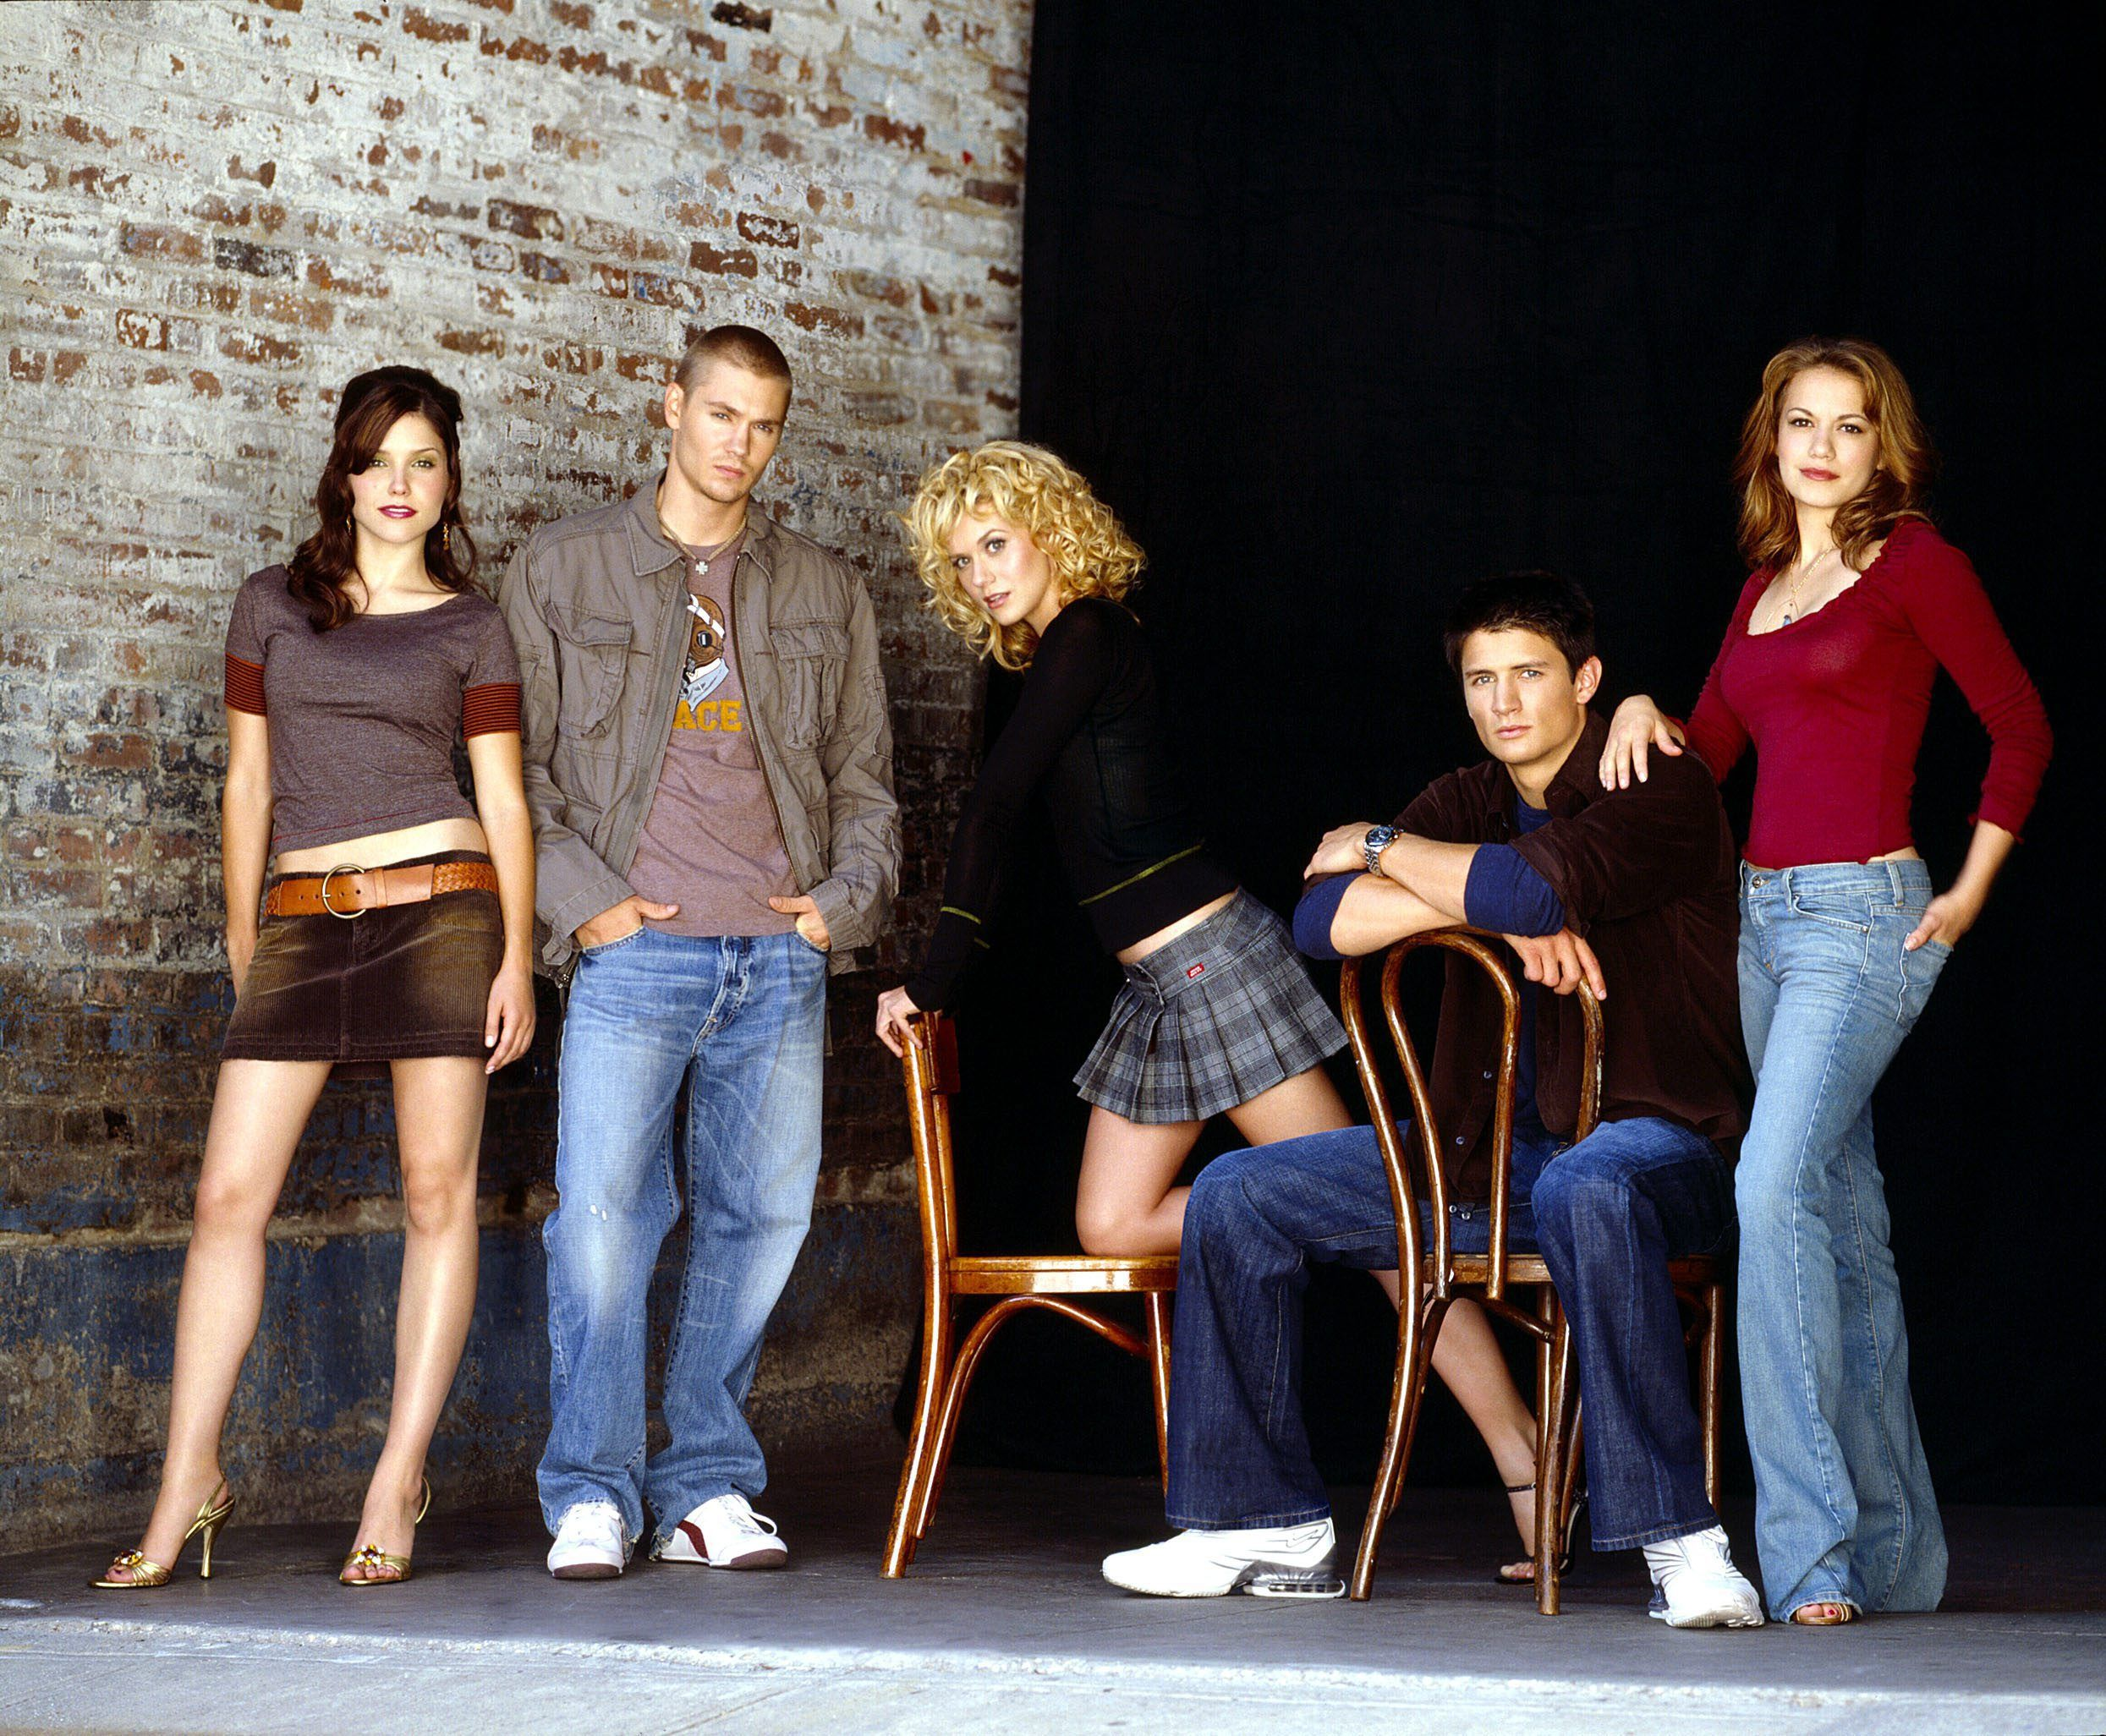 Things You Might Not Know About The Cast Of One Tree Hill - Fame10